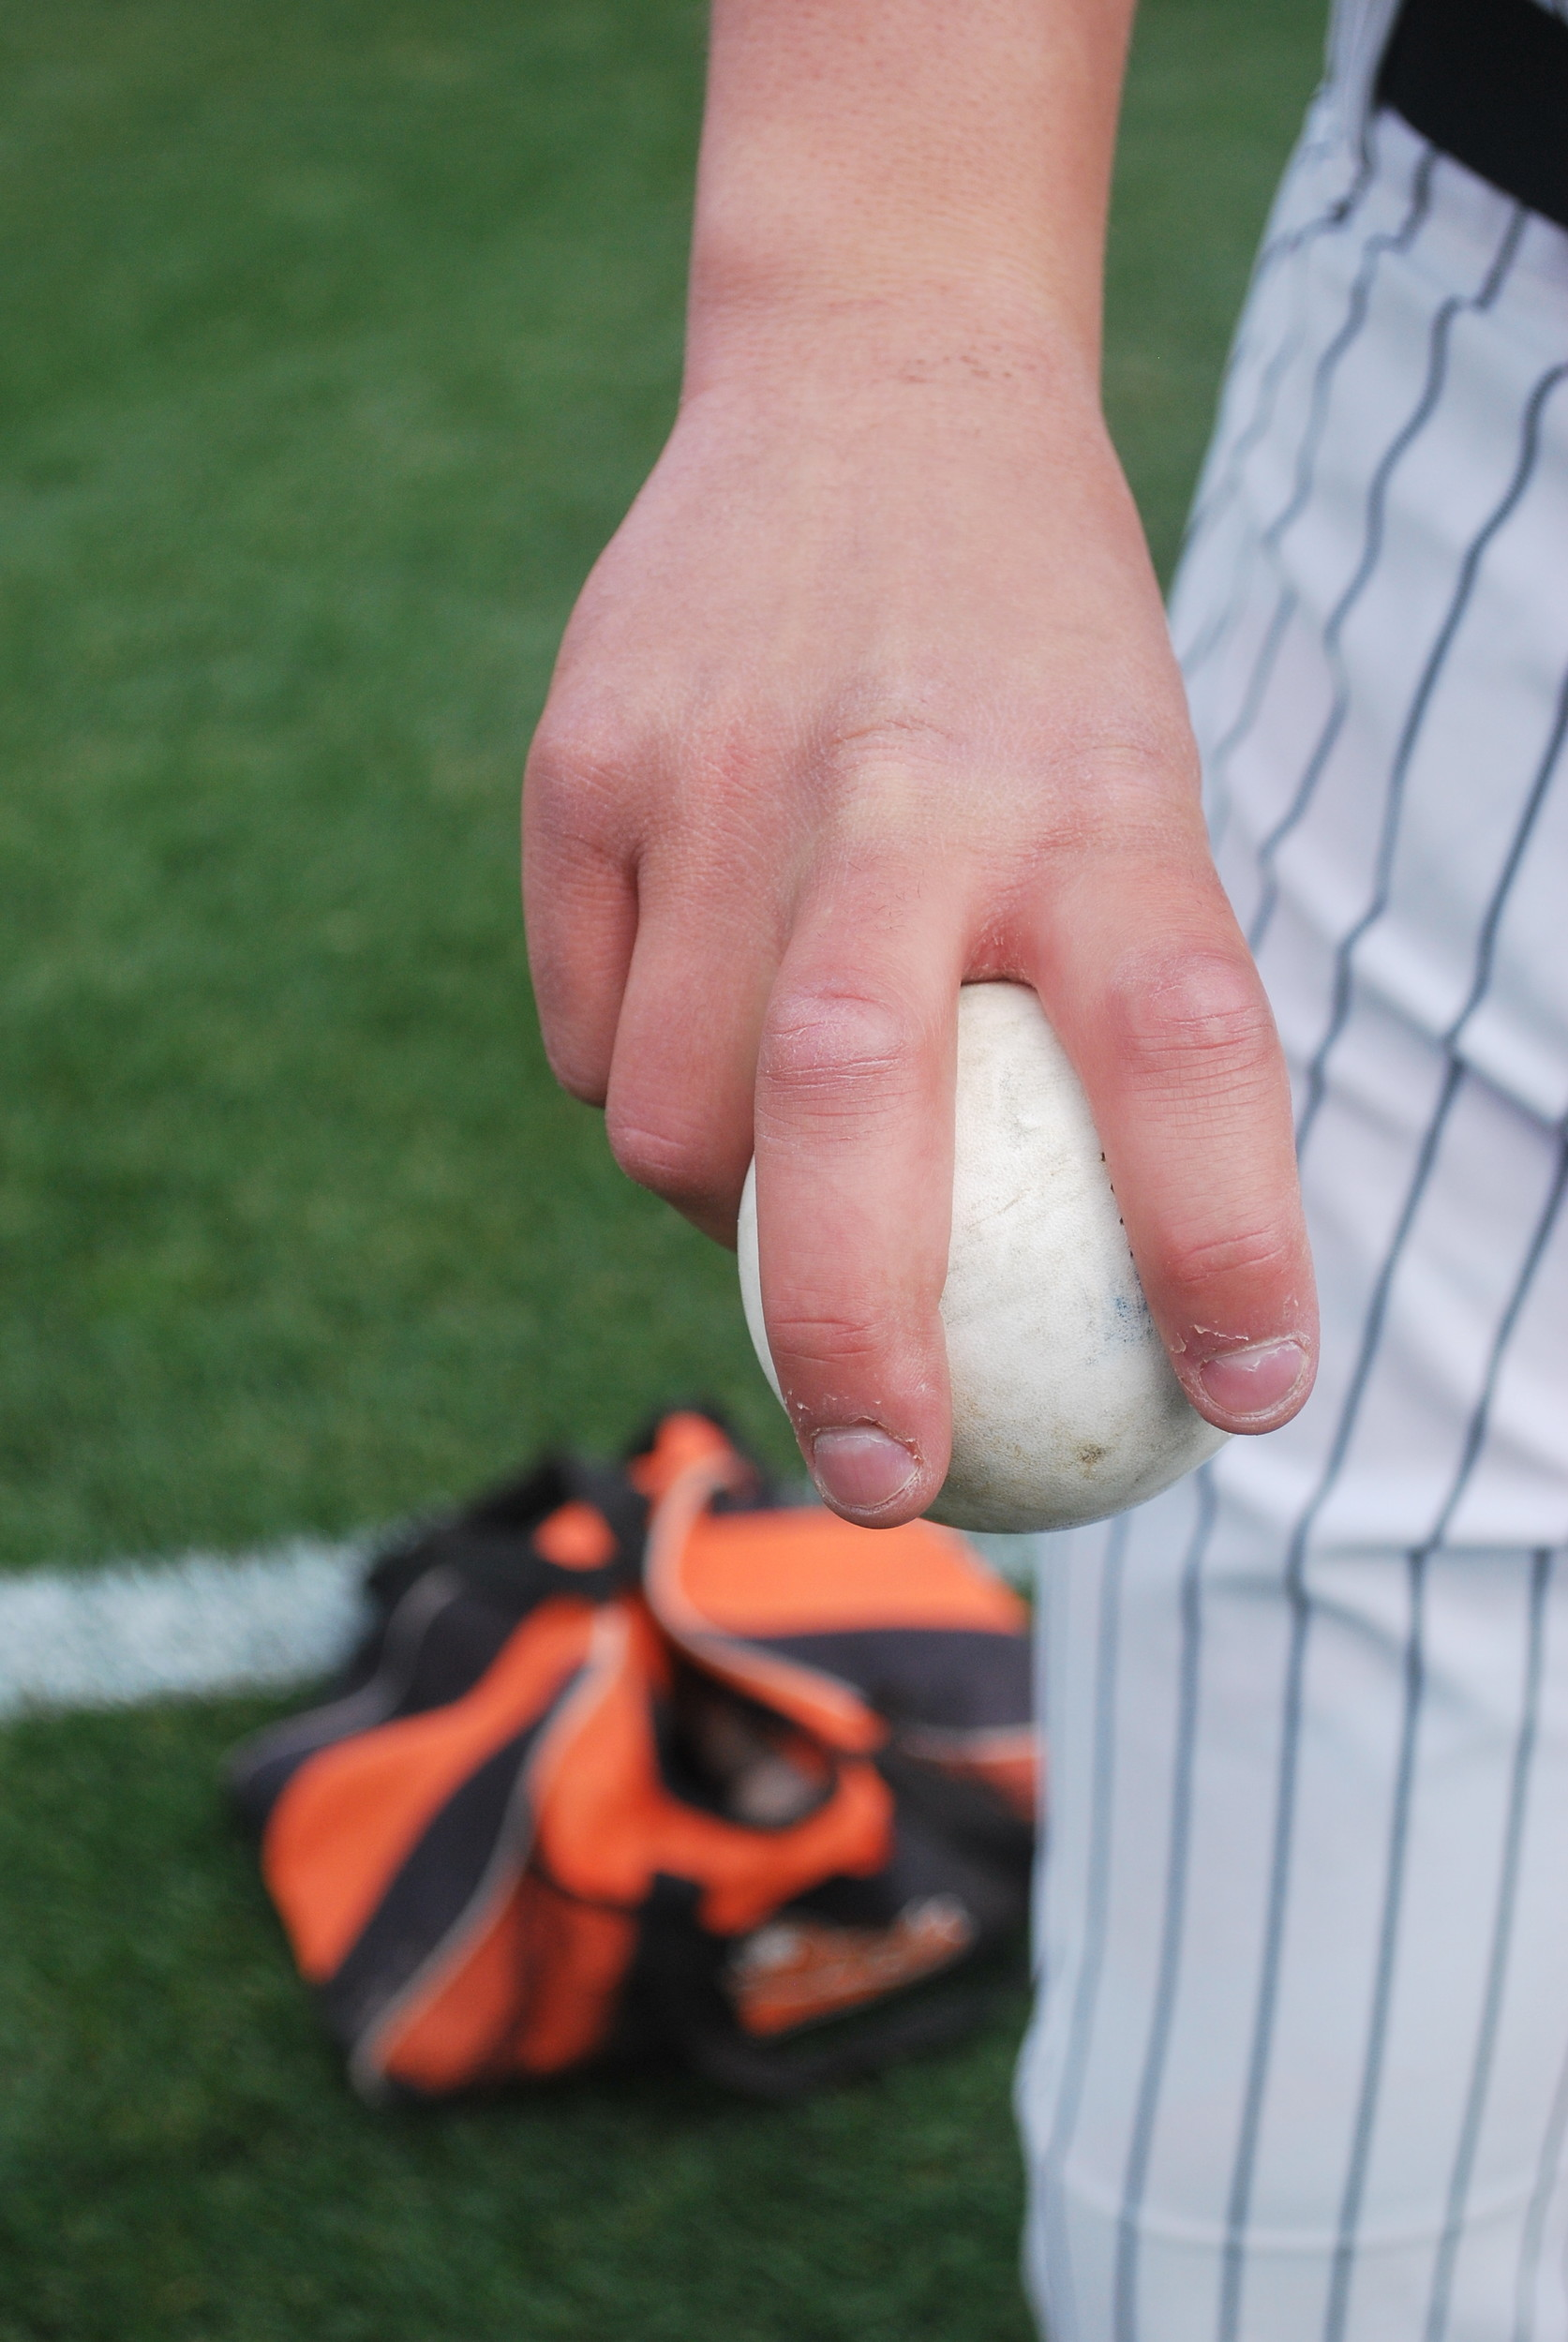 Long Island Ducks right-hander Keith Couch demonstrated how he grips his two-seam fastball.